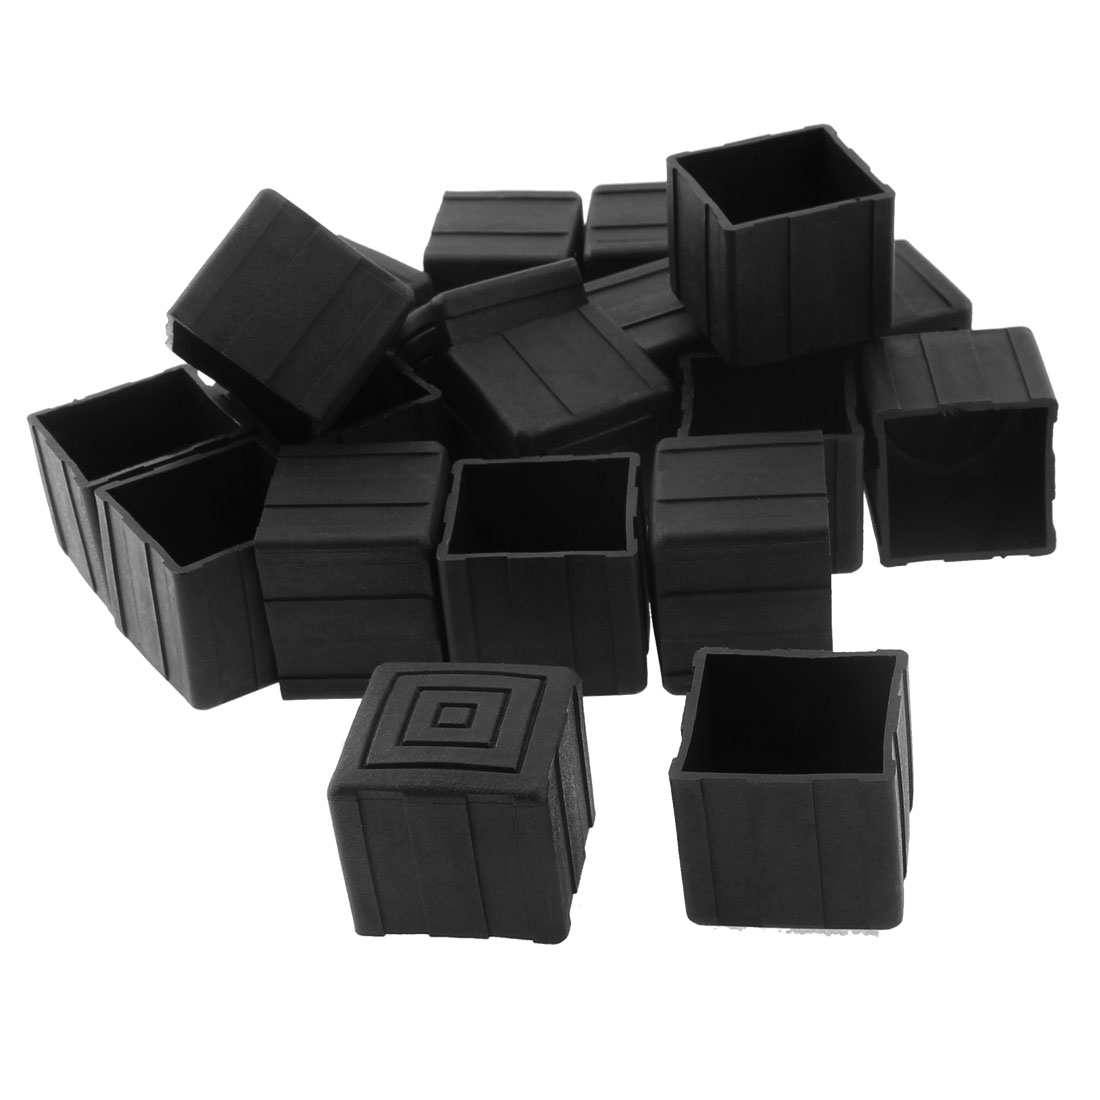 25mm x 25mm Square Shaped Furniture Table Chair Leg Foot Plastic Cover Cap Black 20pcs